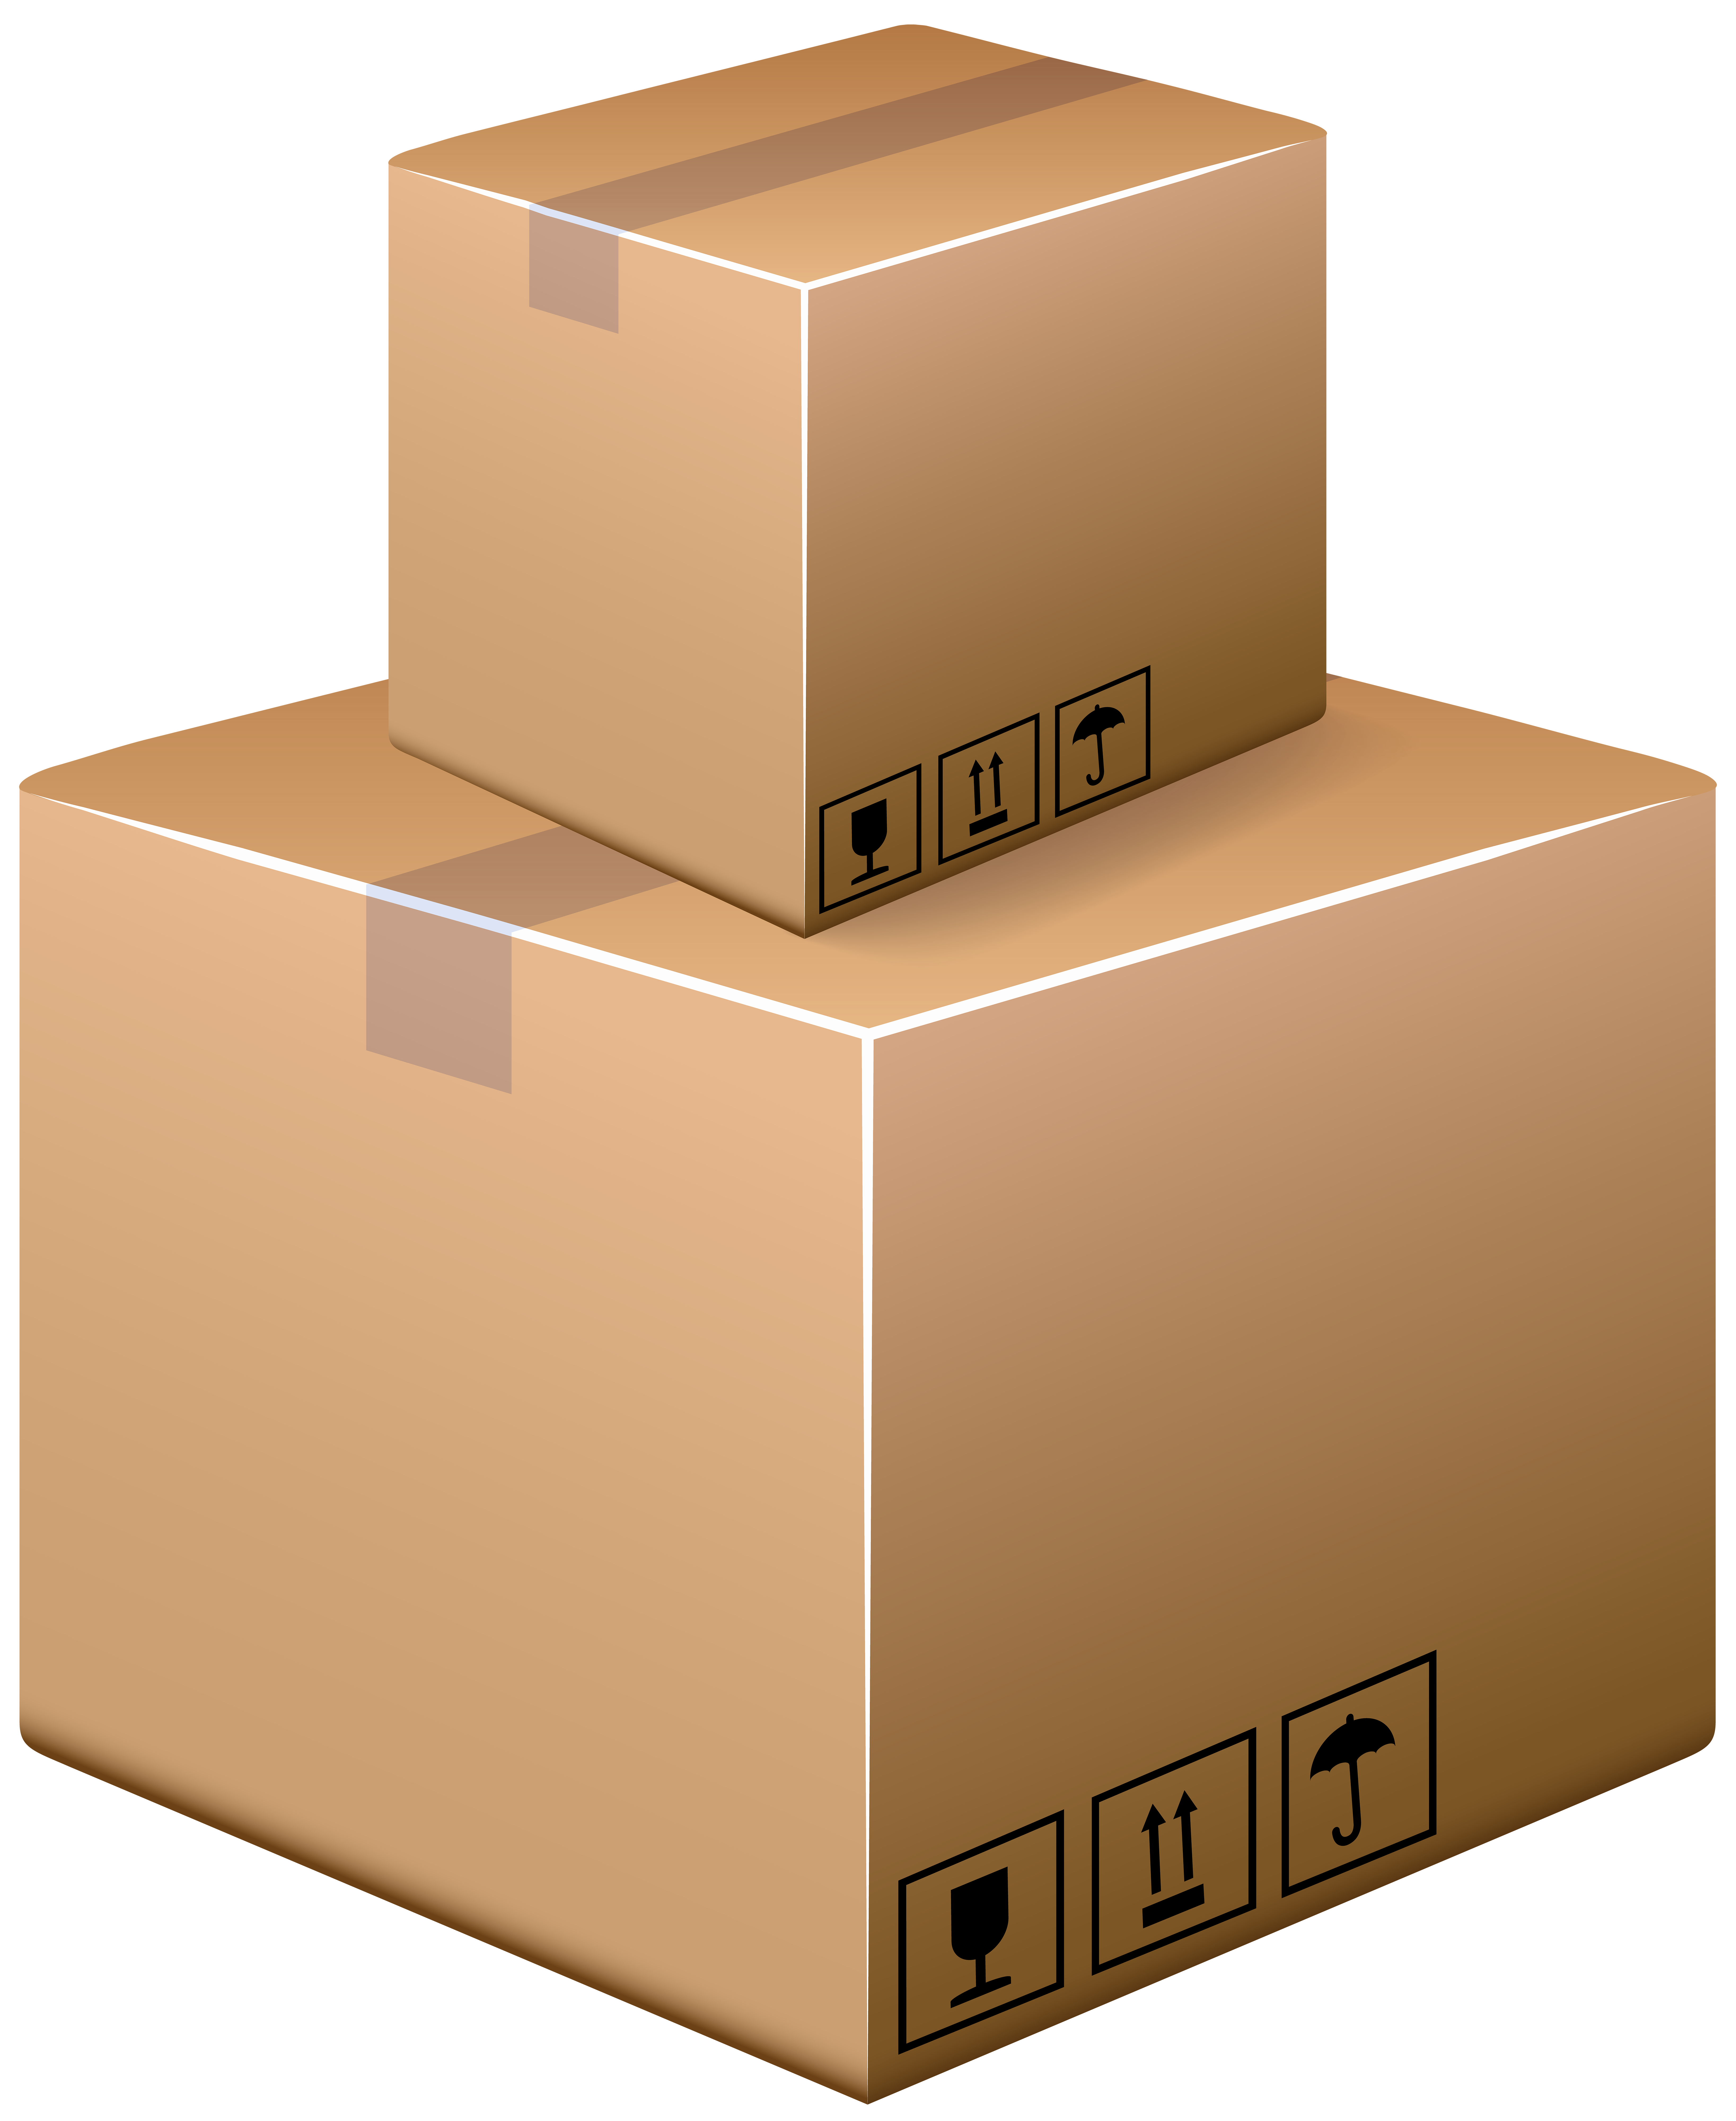 Boxes clipart cardboard box. Png clip art best